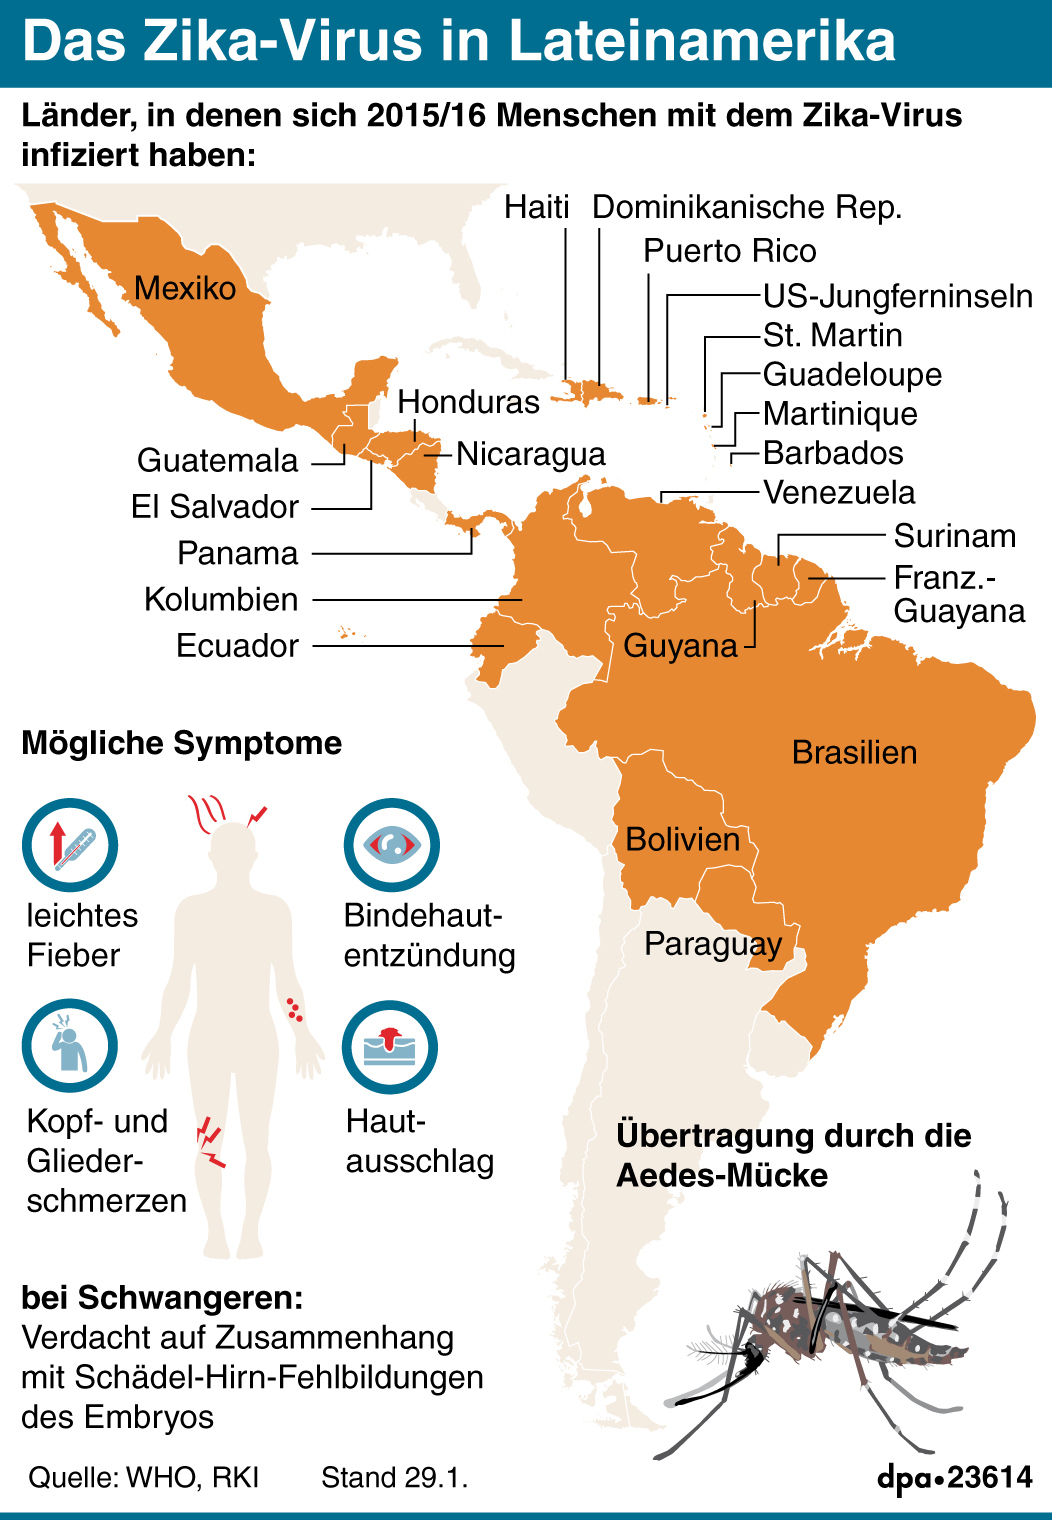 Das Zika-Virus in Lateinamerika (Quelle: dpa)